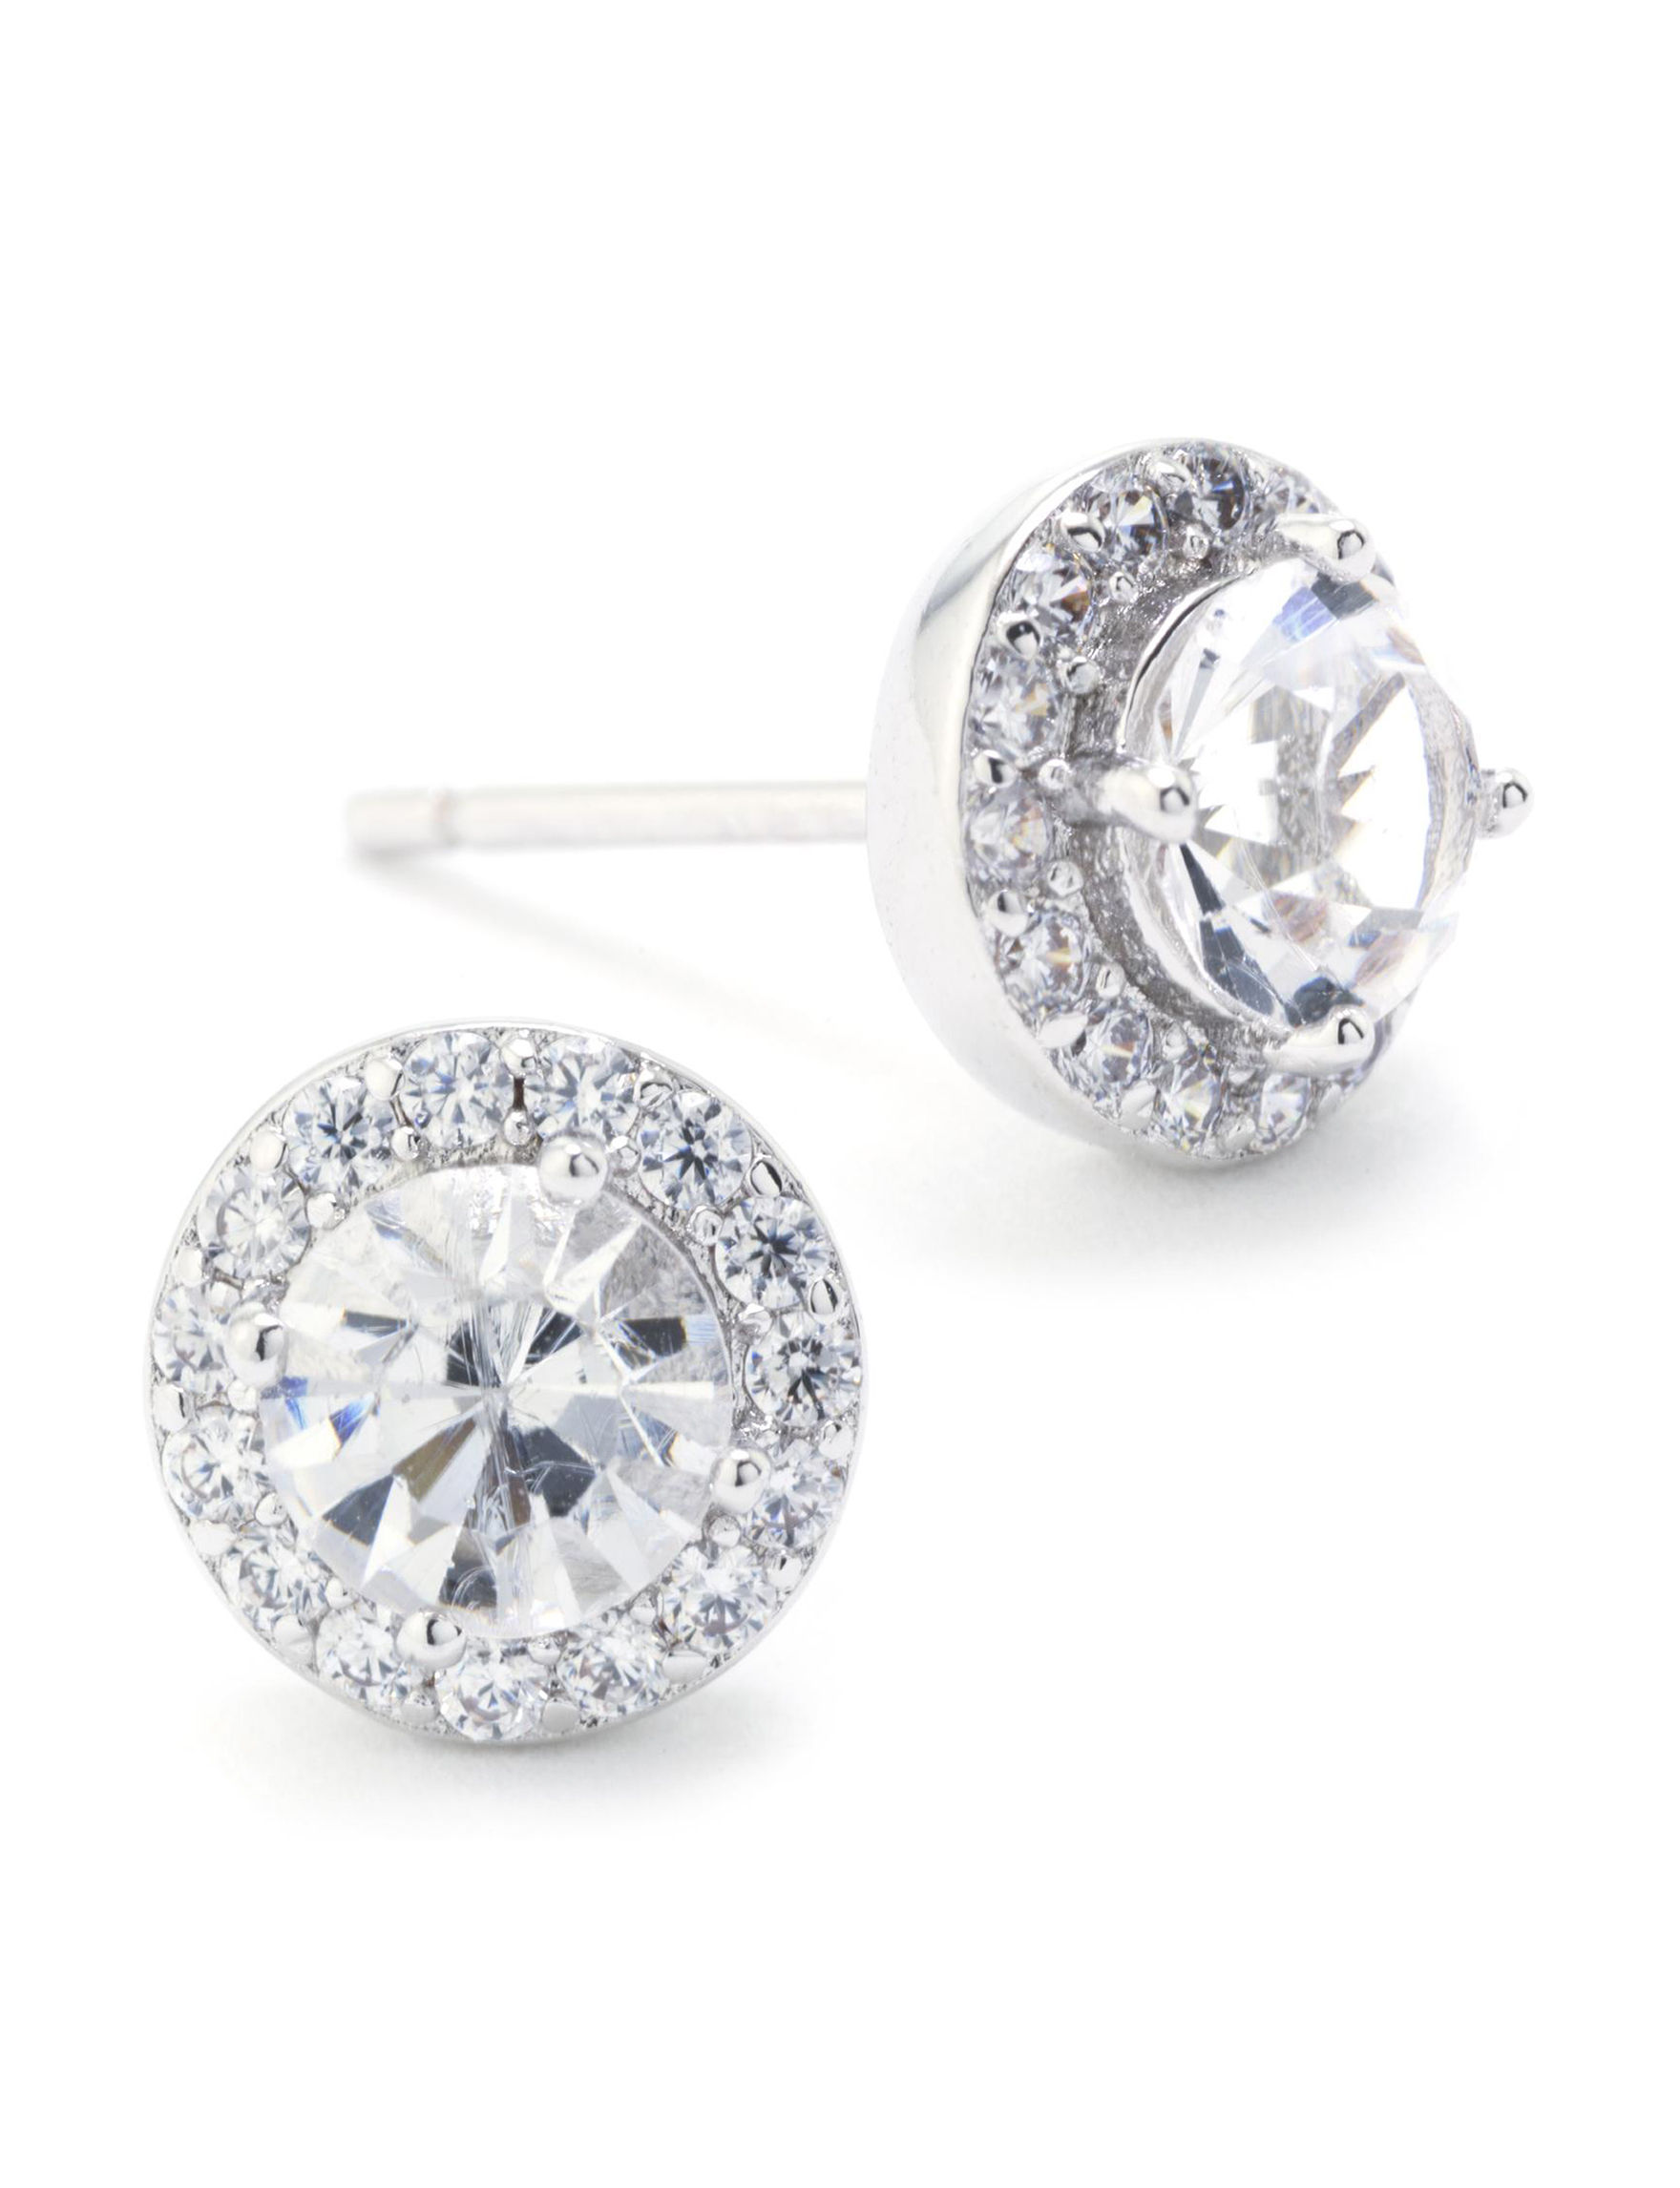 Athra Fine Silver Plated Studs Earrings Fine Jewelry